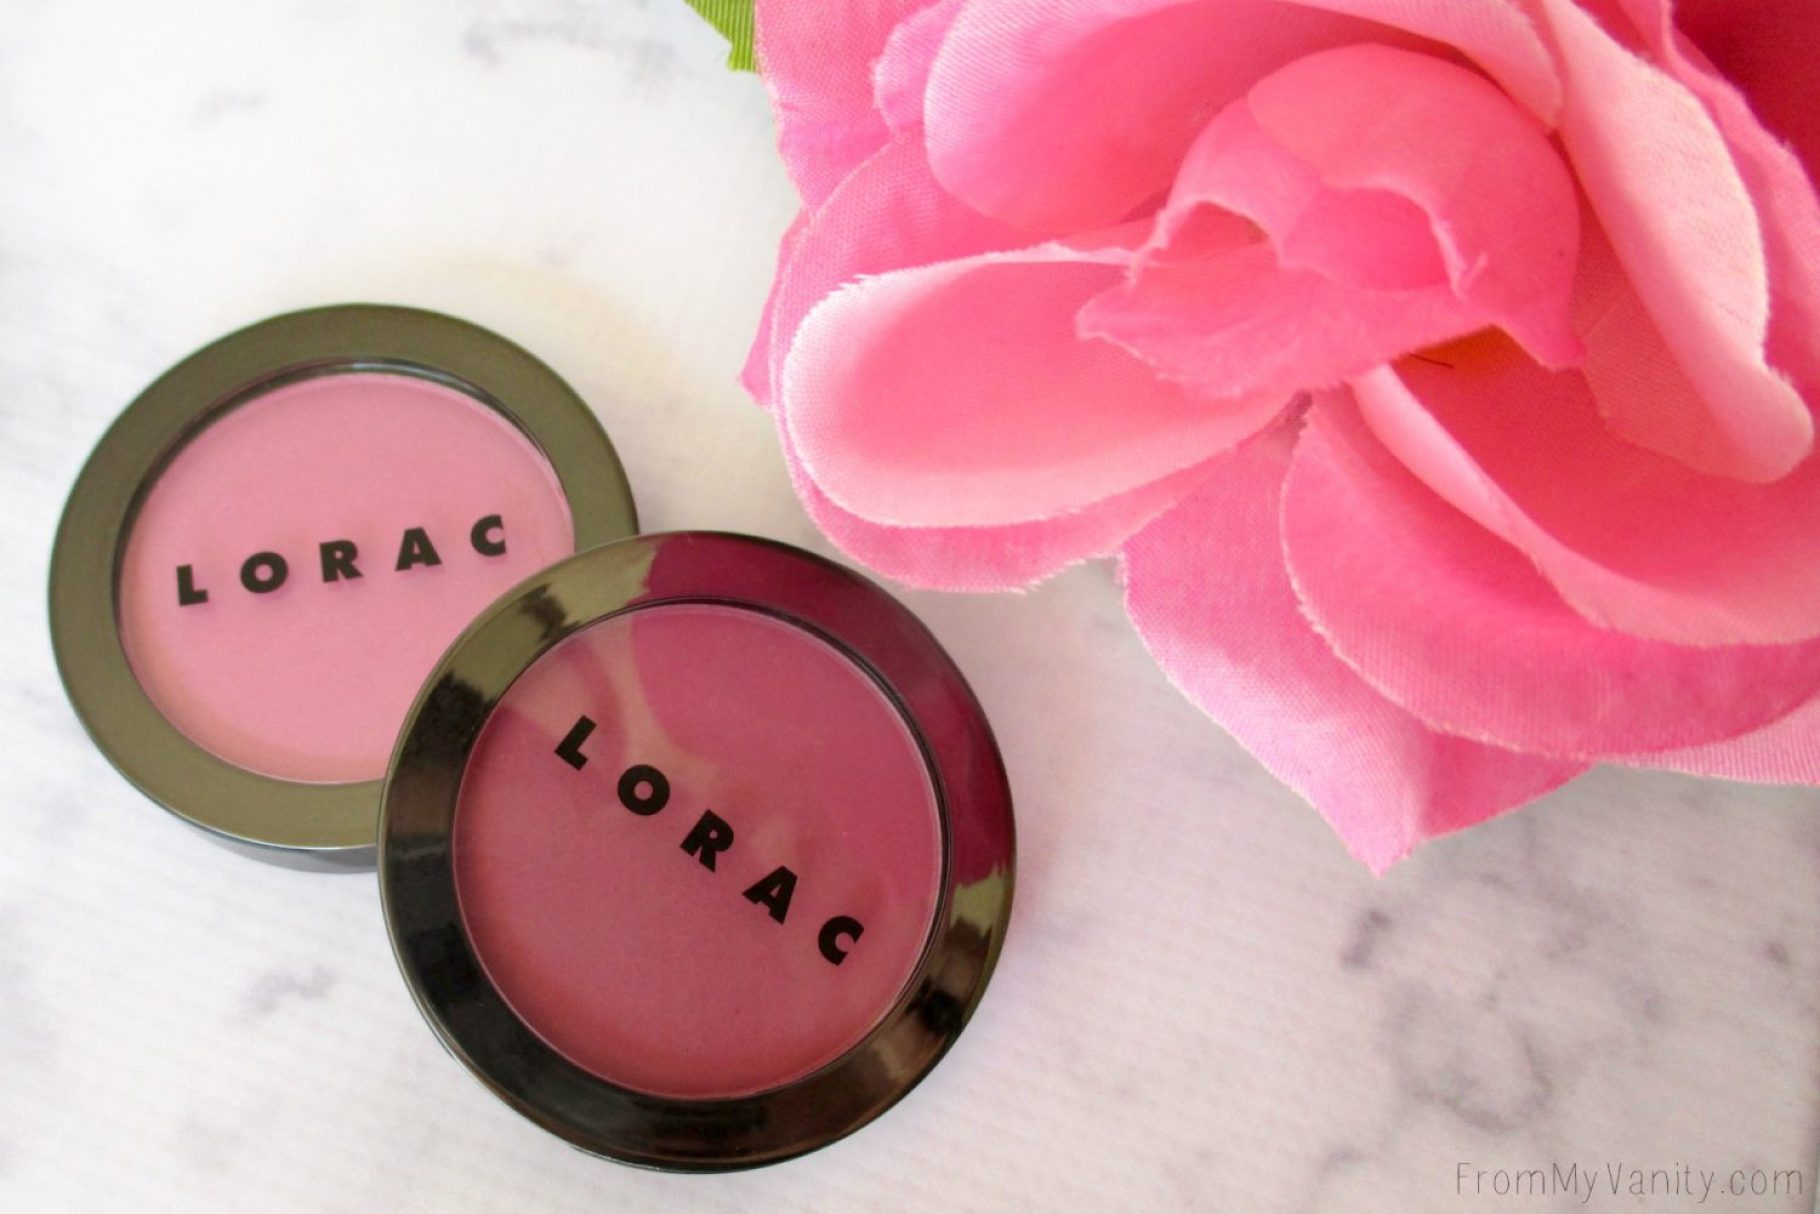 Lorac Color Source Buildable Blushes // Displayed // FromMyVanity.com @LadyKaty92